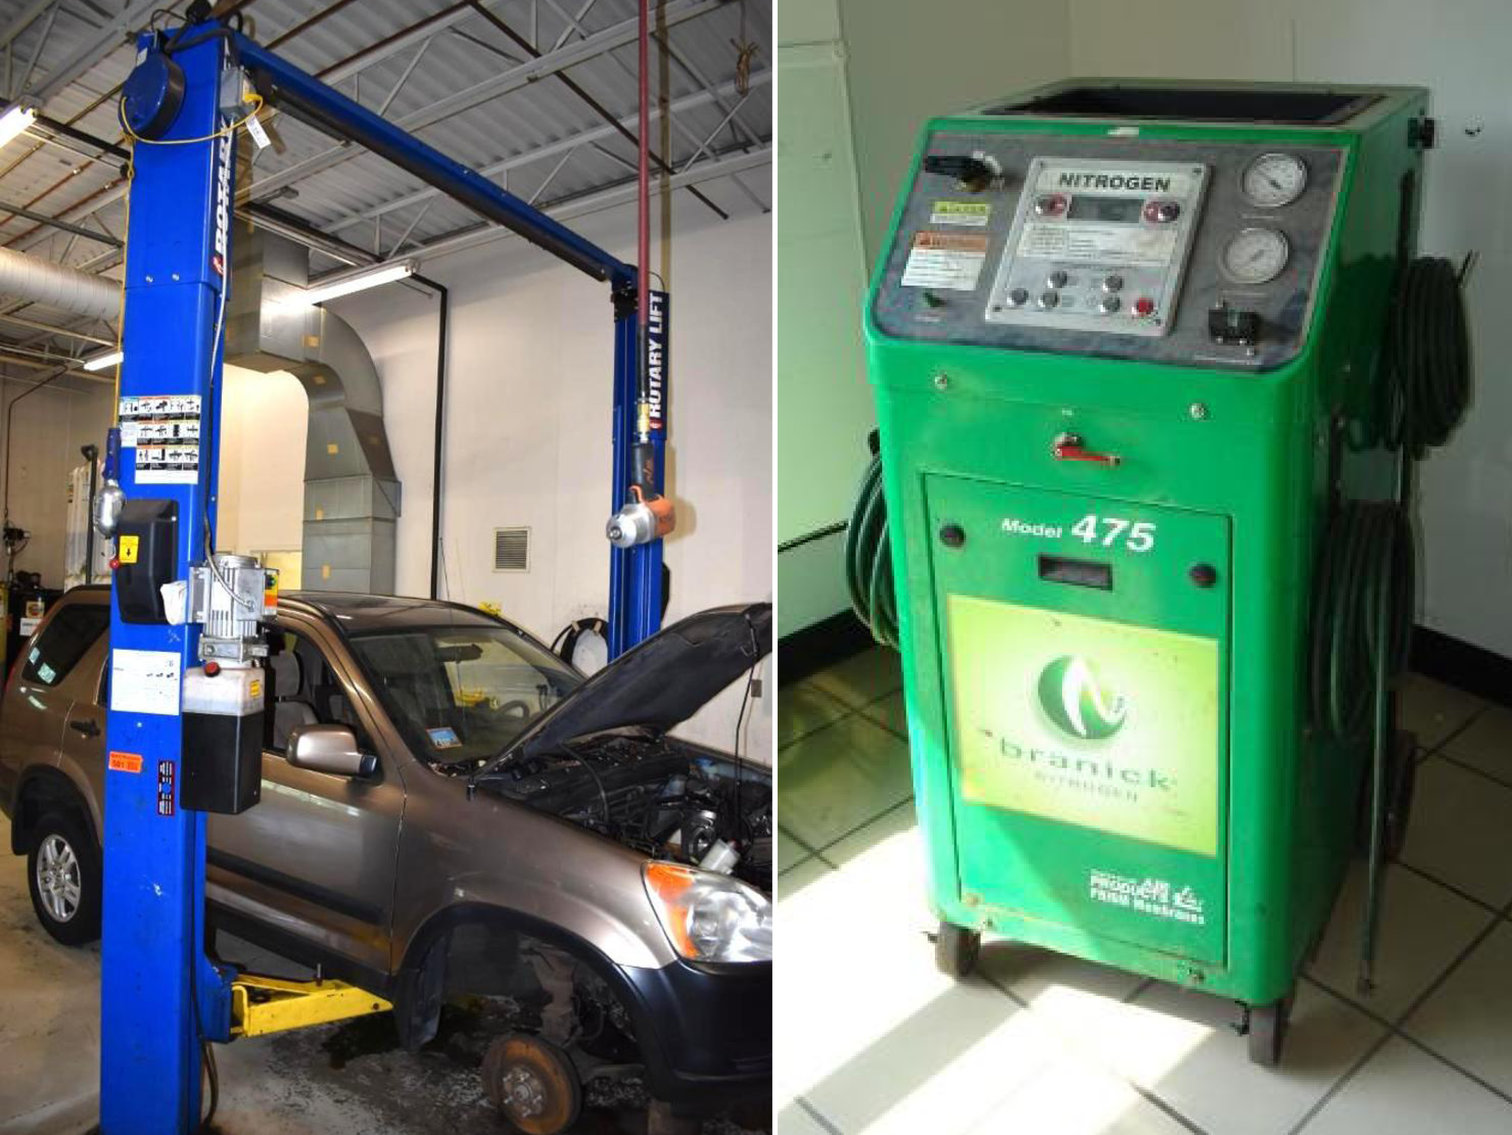 Franchise Car Store Rebuilding - Replacing Shop and Office Equipment